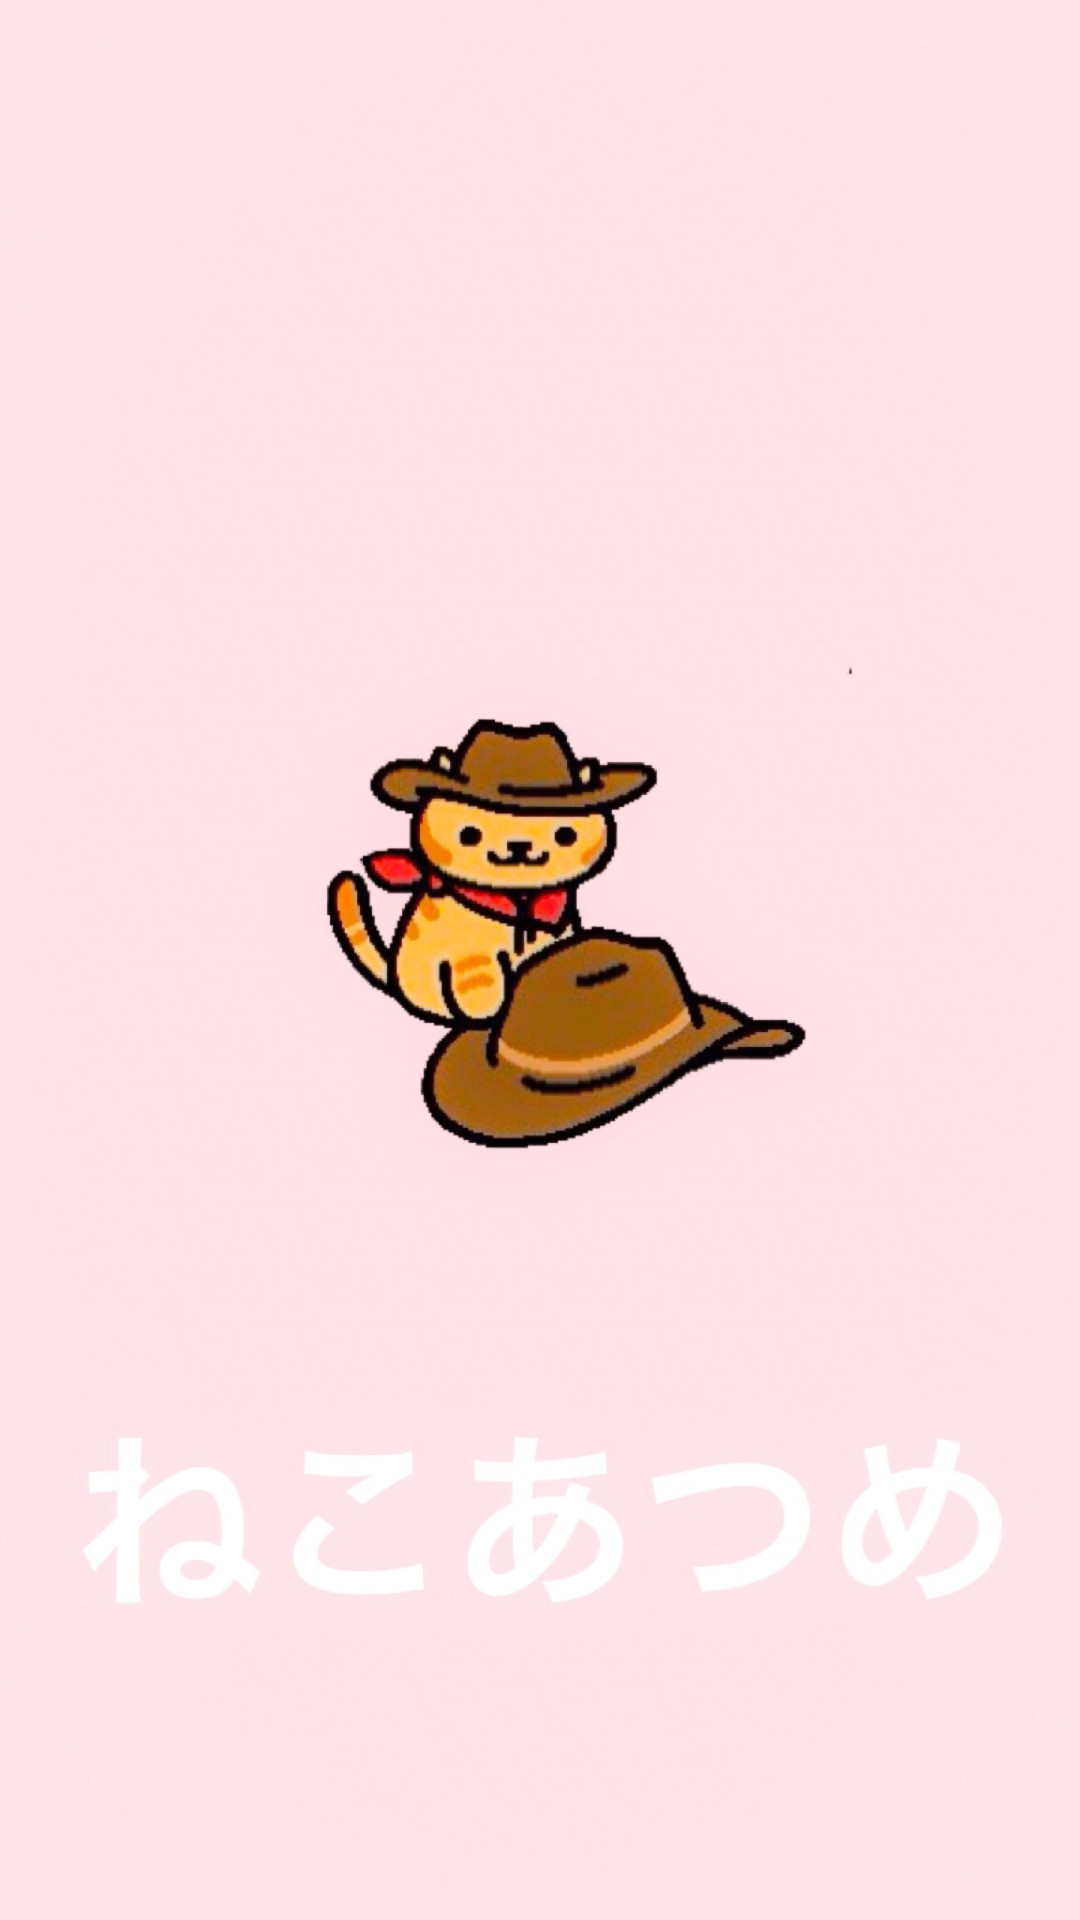 Cute Kitty In Hat 1080. Tap to see more Neko Atsume the cat wallpapers,